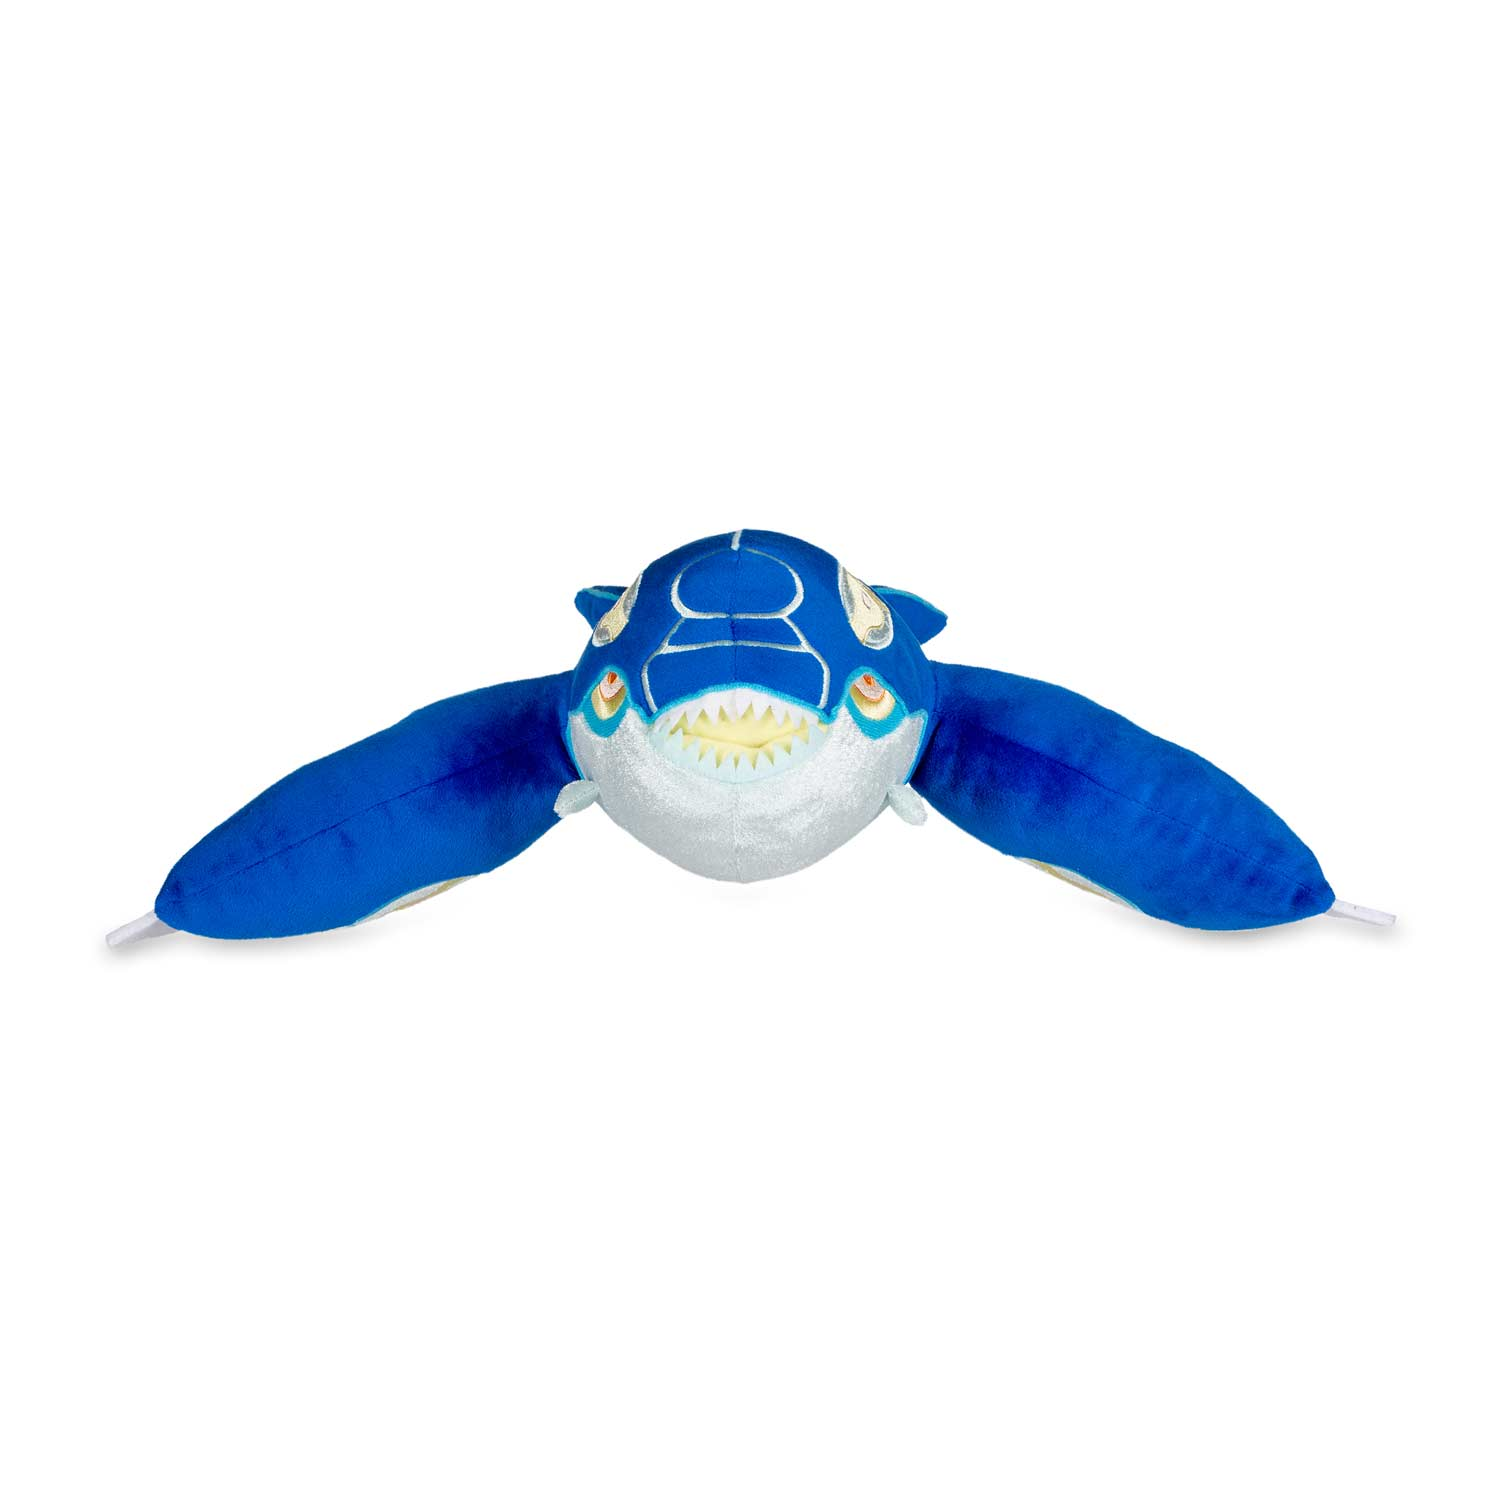 Primal Kyogre primal kyogre poké plush | large |pokémon center original